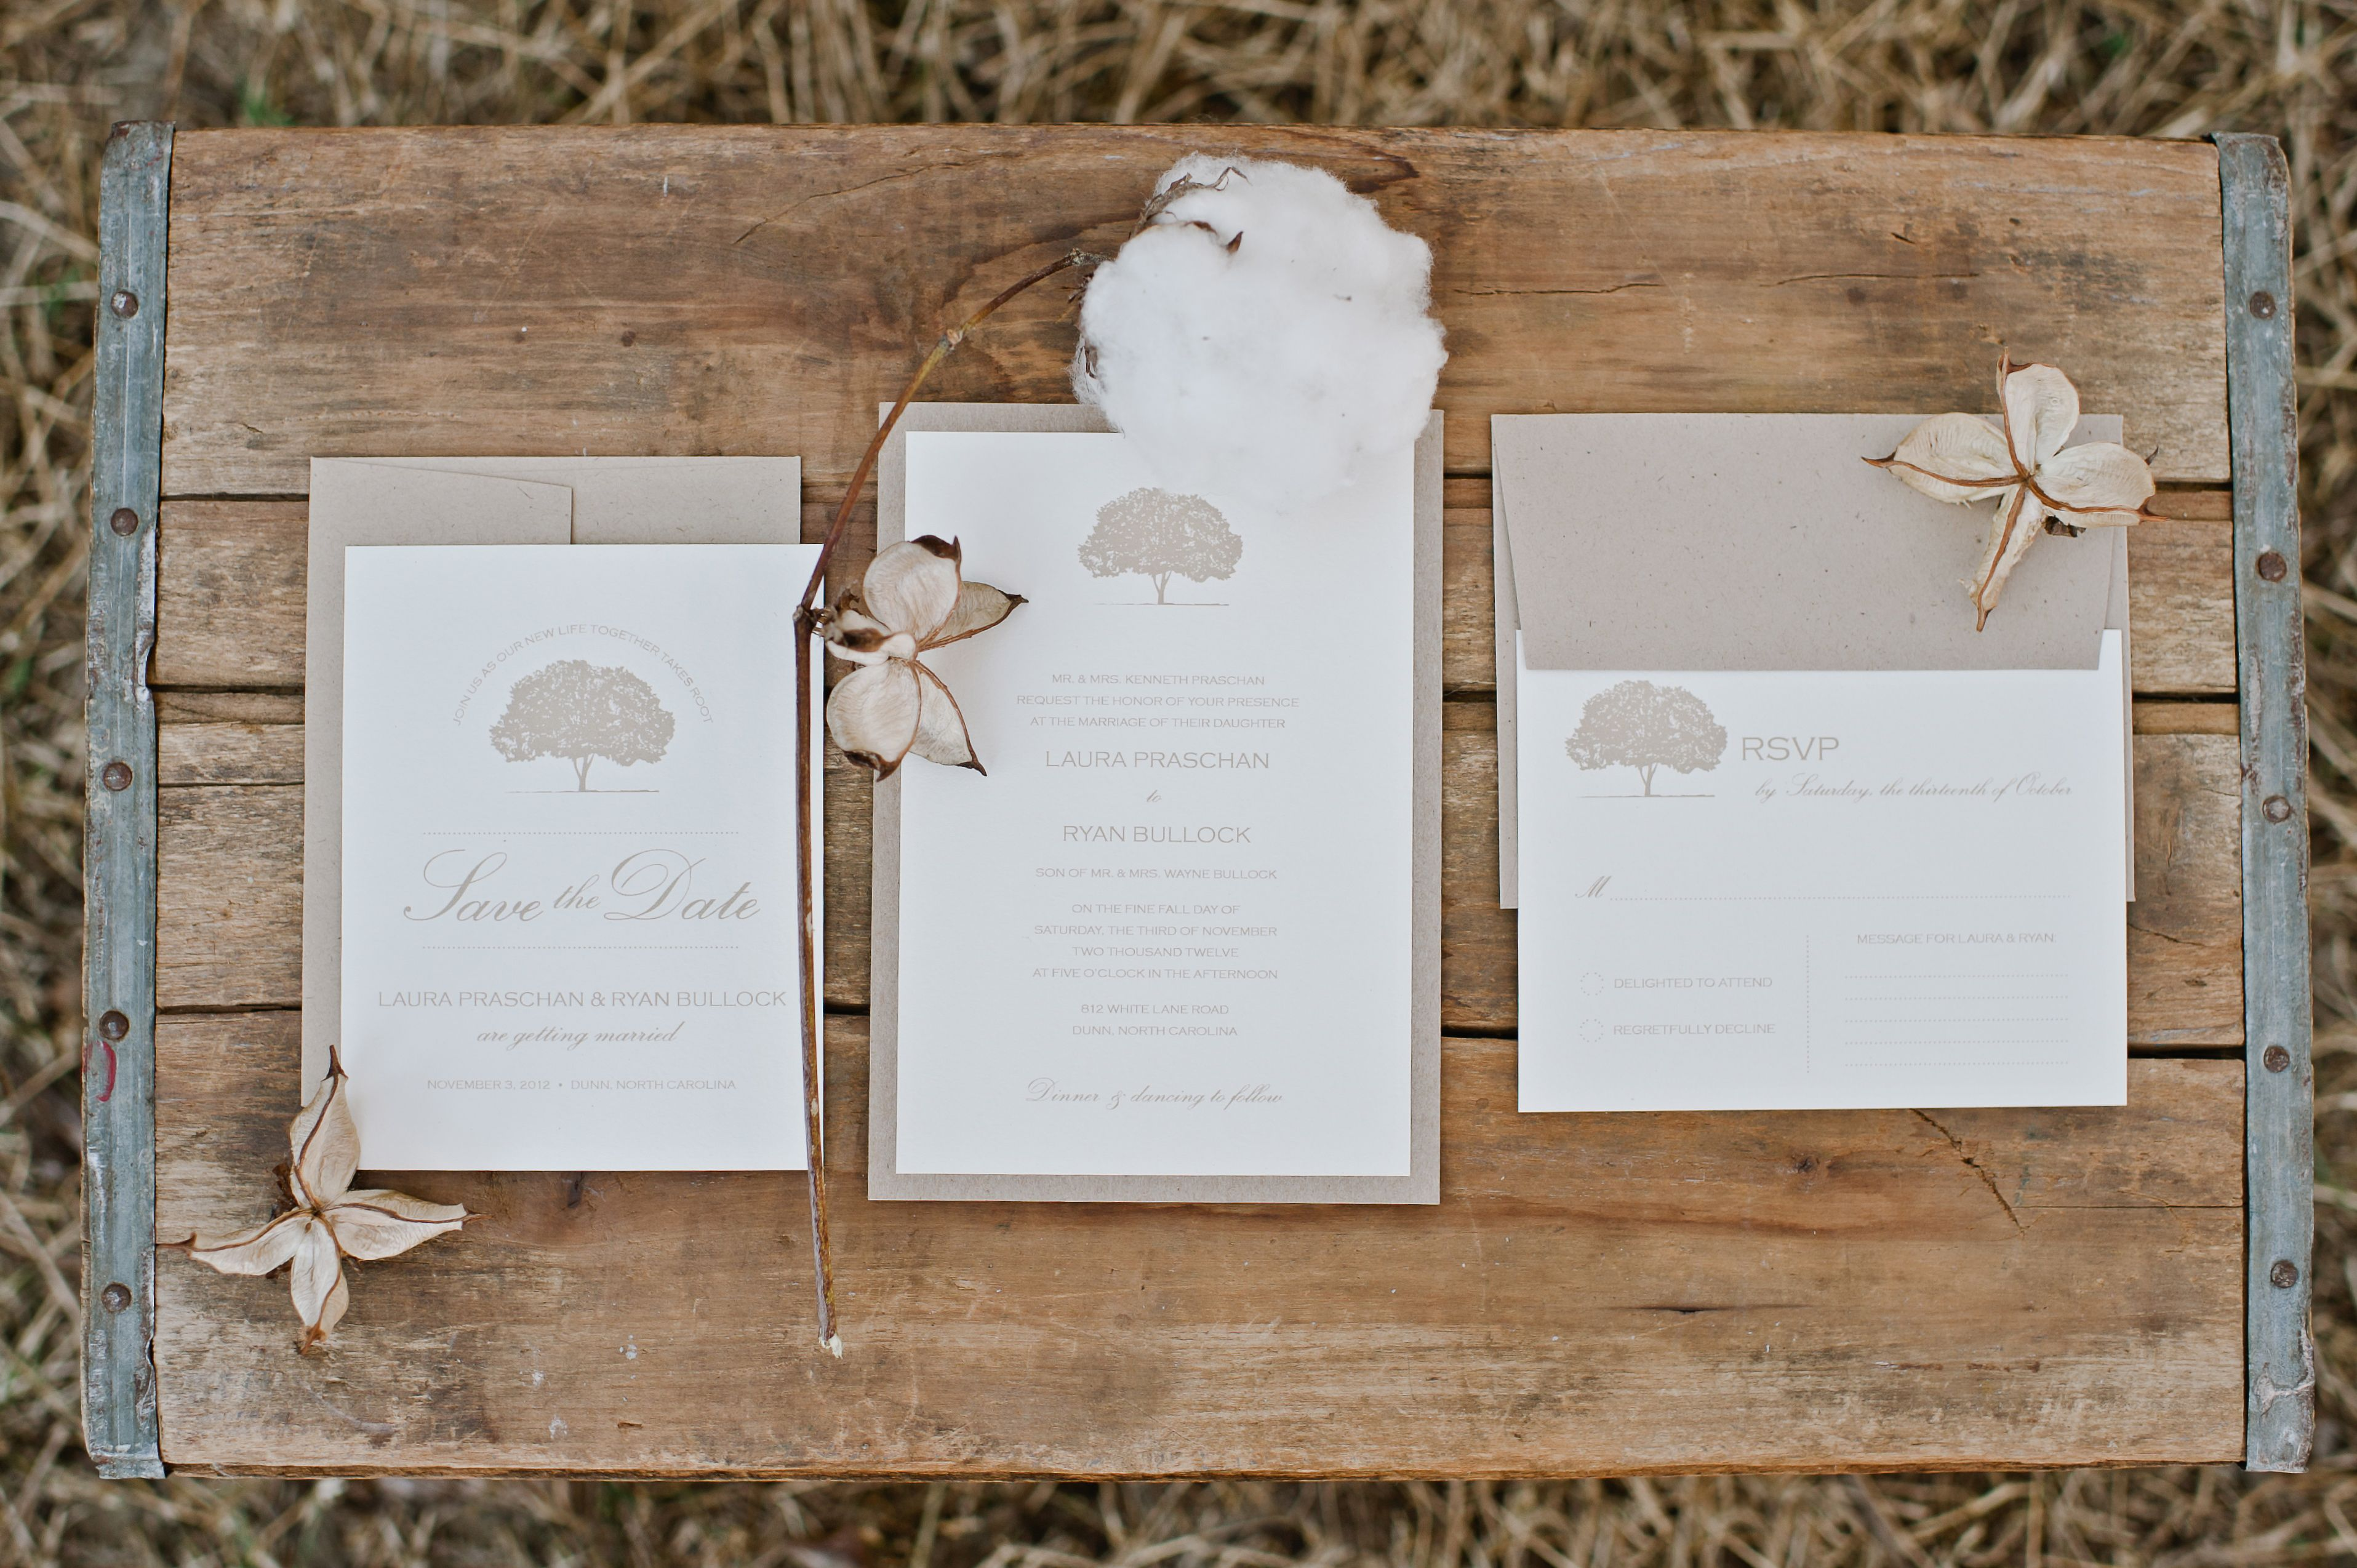 17 Best images about Rustic wedding invitations – Rustic Elegance Wedding Invitations